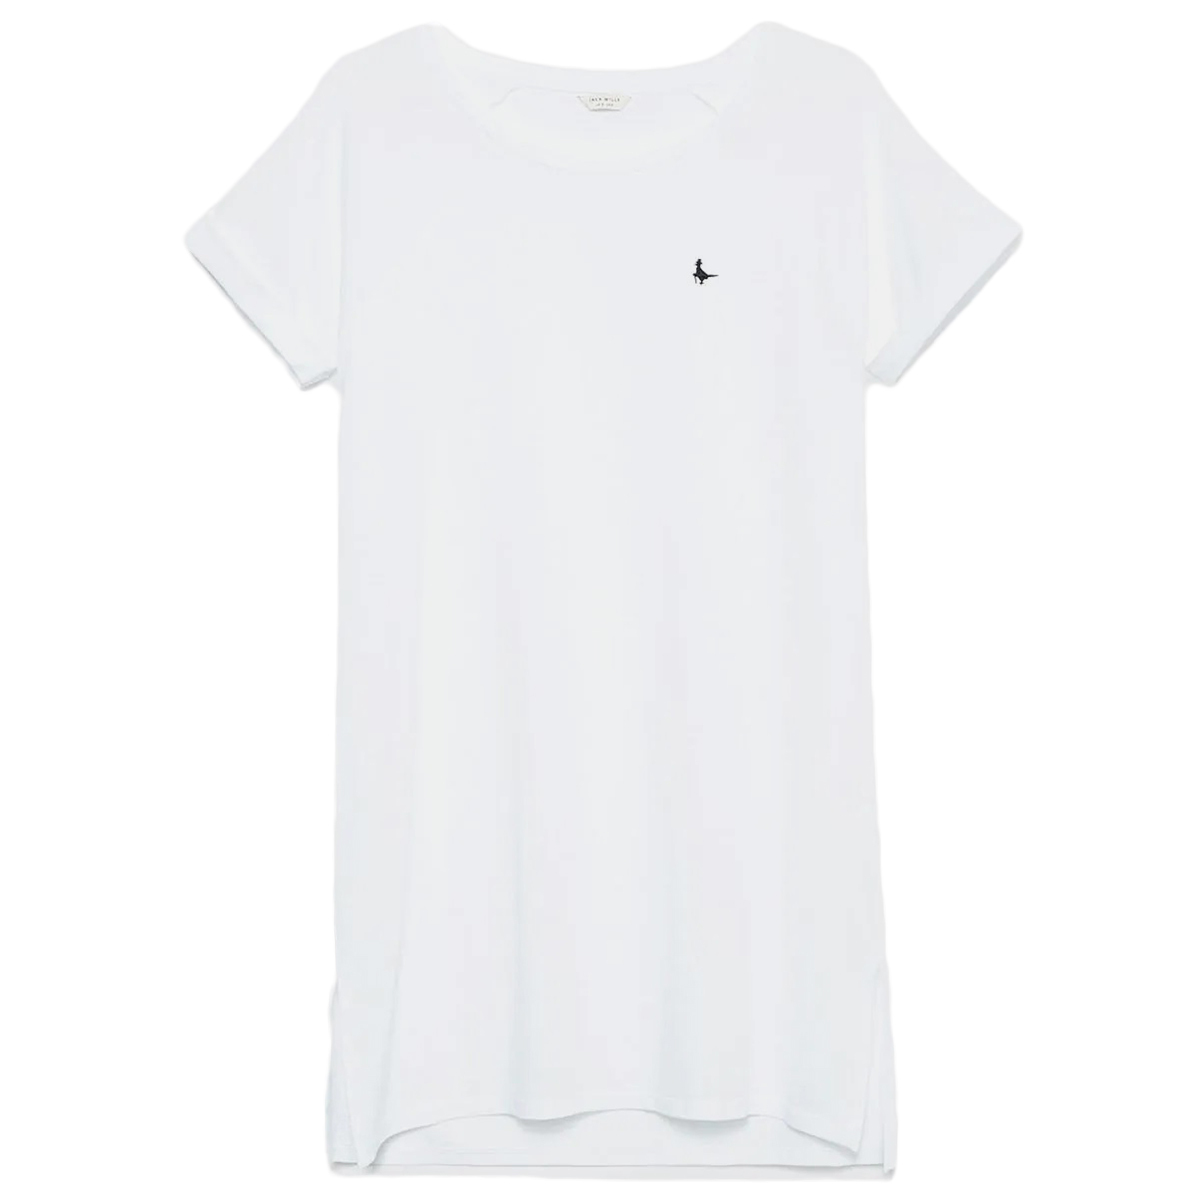 Jack Wills Women's Raglan Short-Sleeve Tee - White, 10